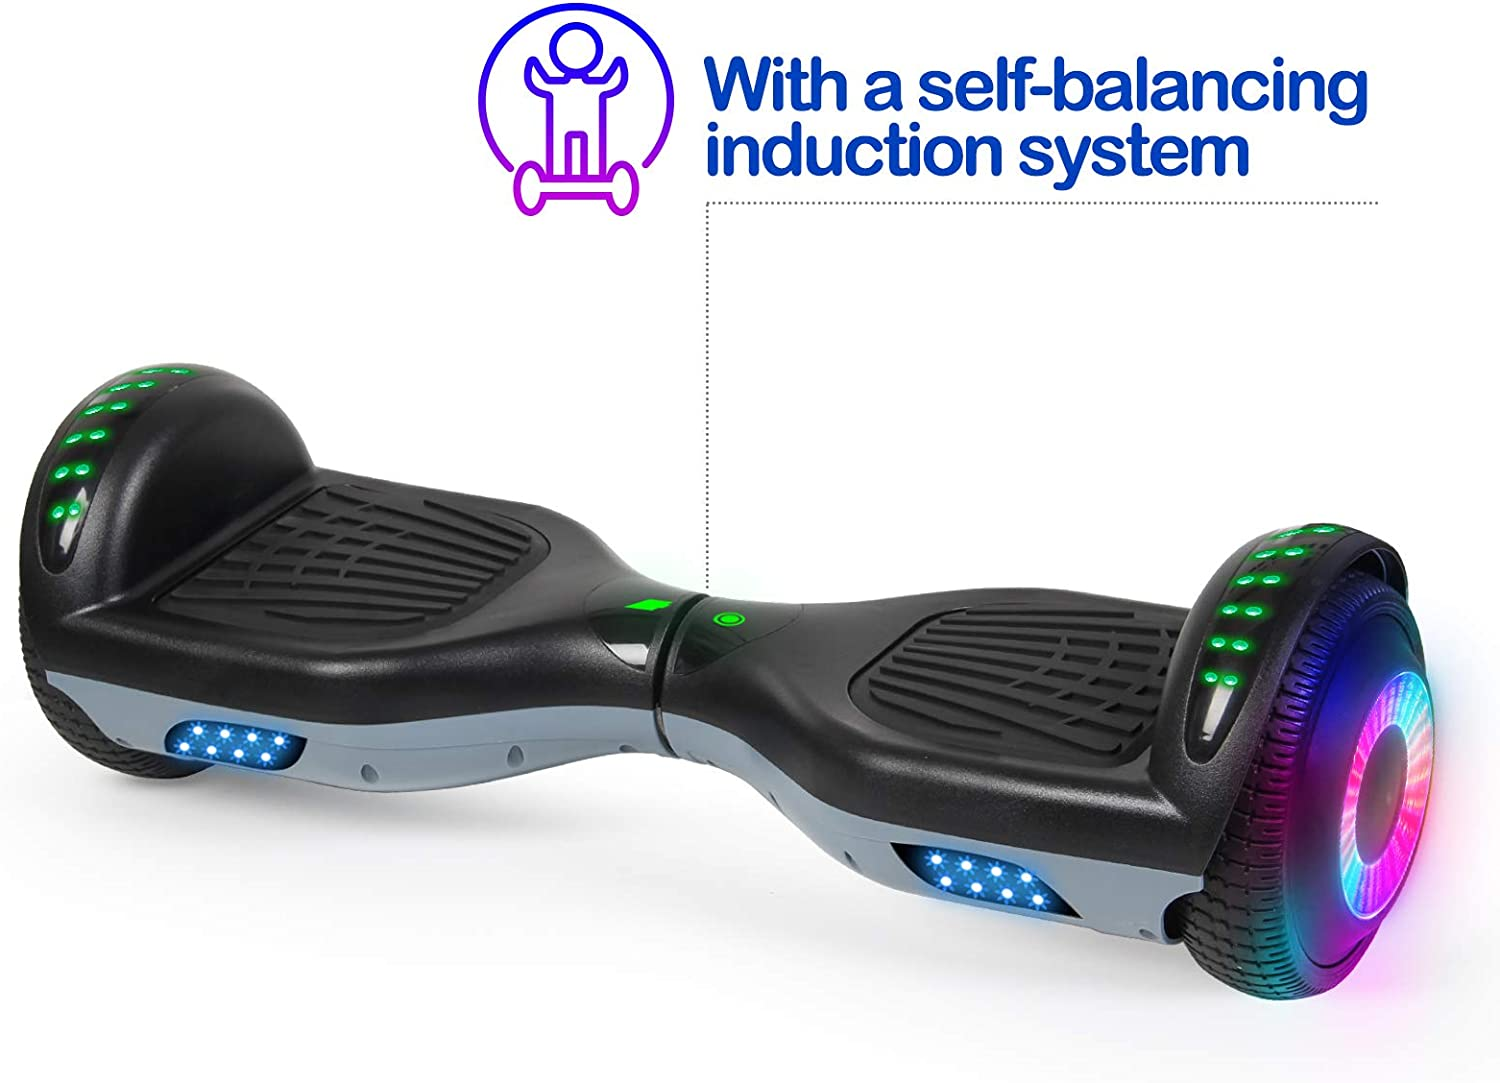 SISGAD Hoverboards 300W Motor for Kids Self Balancing Scooter 6.5 Hoverboard Bluetooth Two Wheel Electric Scooter Swegway Board LED Light With 2